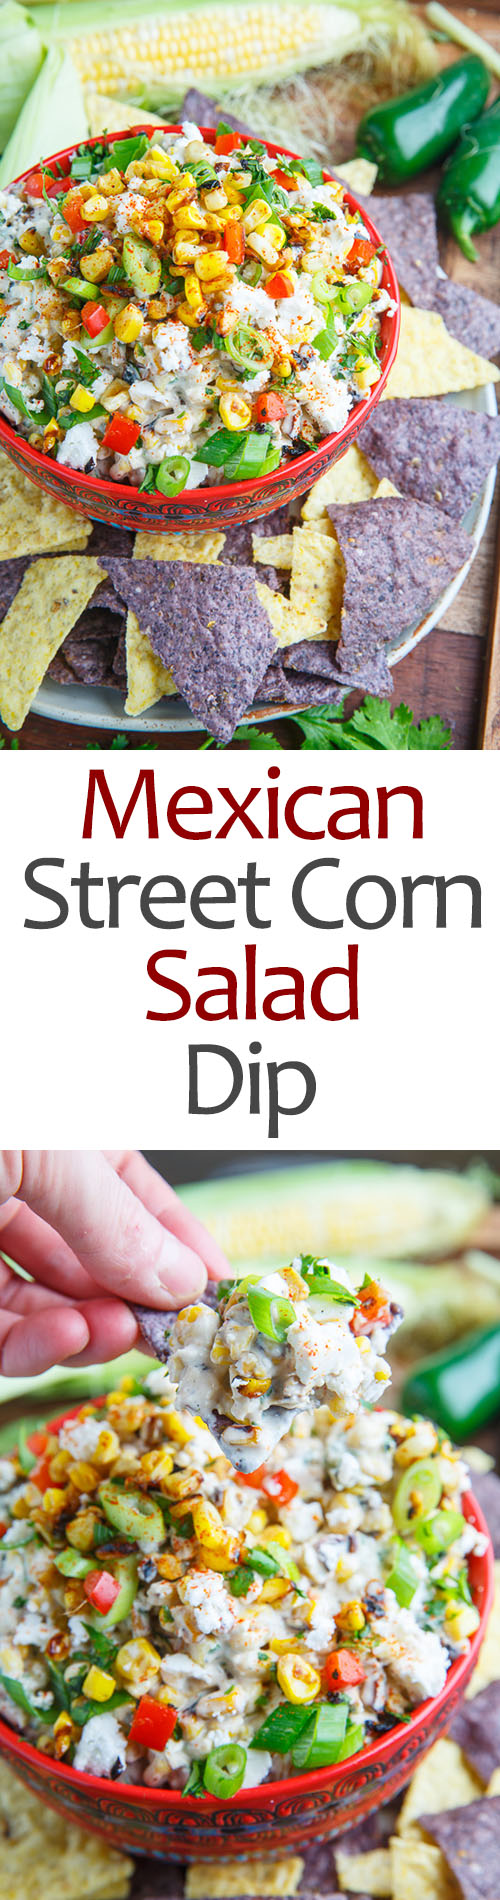 Mexican Corn Salad Dip